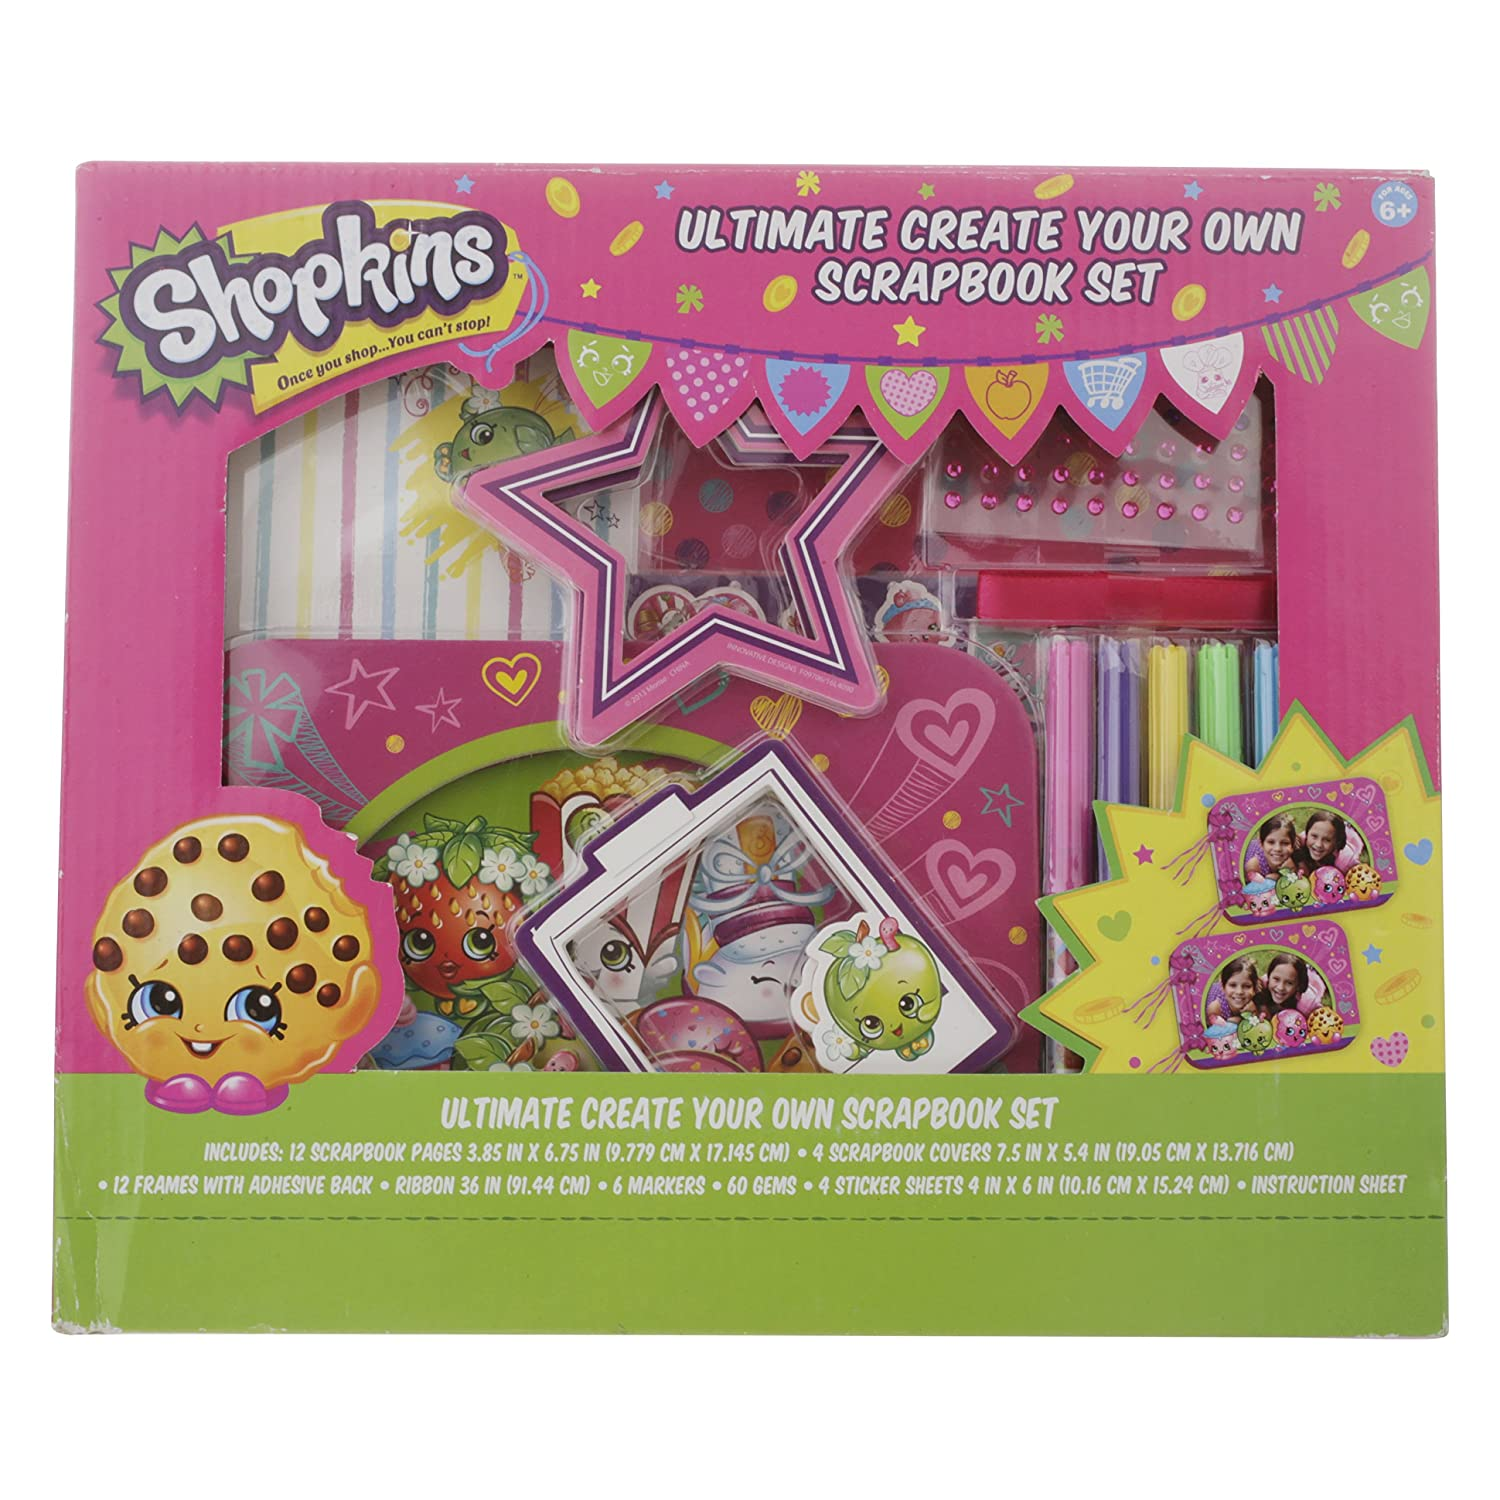 Shopkins Ultimate Create Your Own Scrapbook Set Innovative Designs